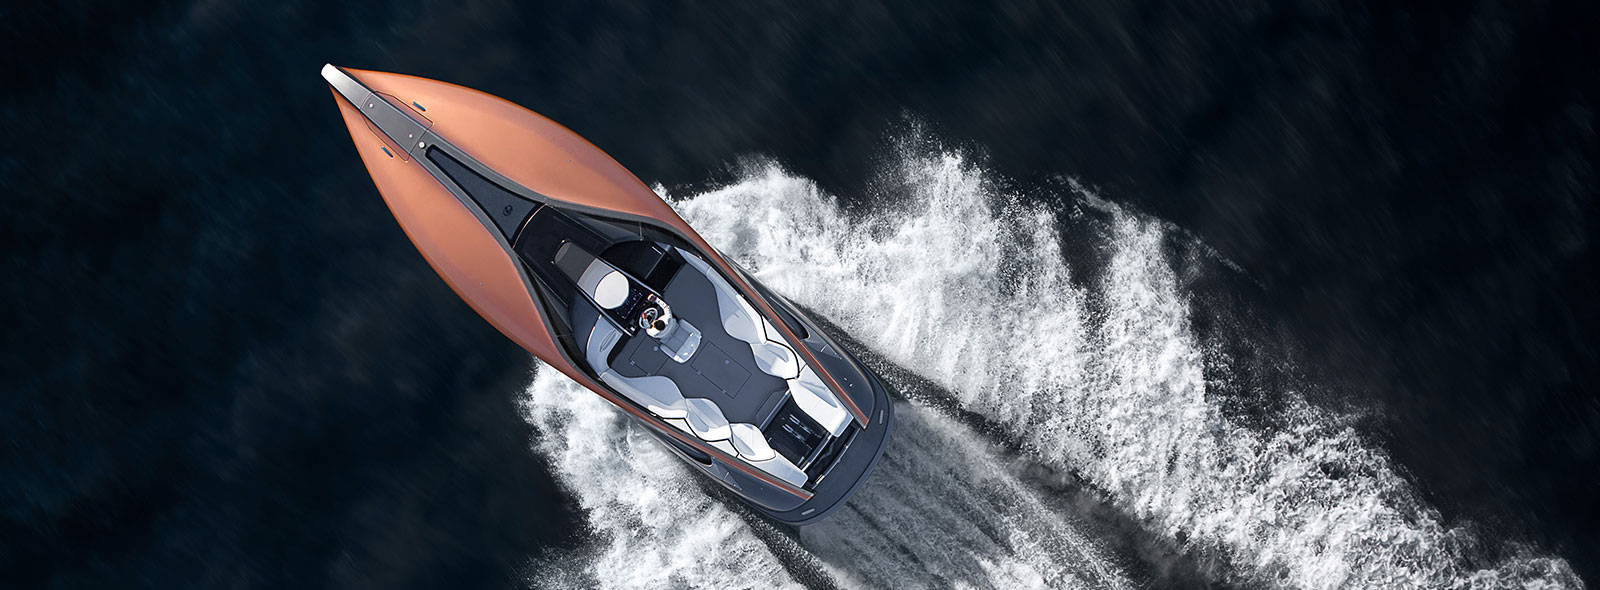 2017 Lexus Sports Yacht Concept Gallery 01